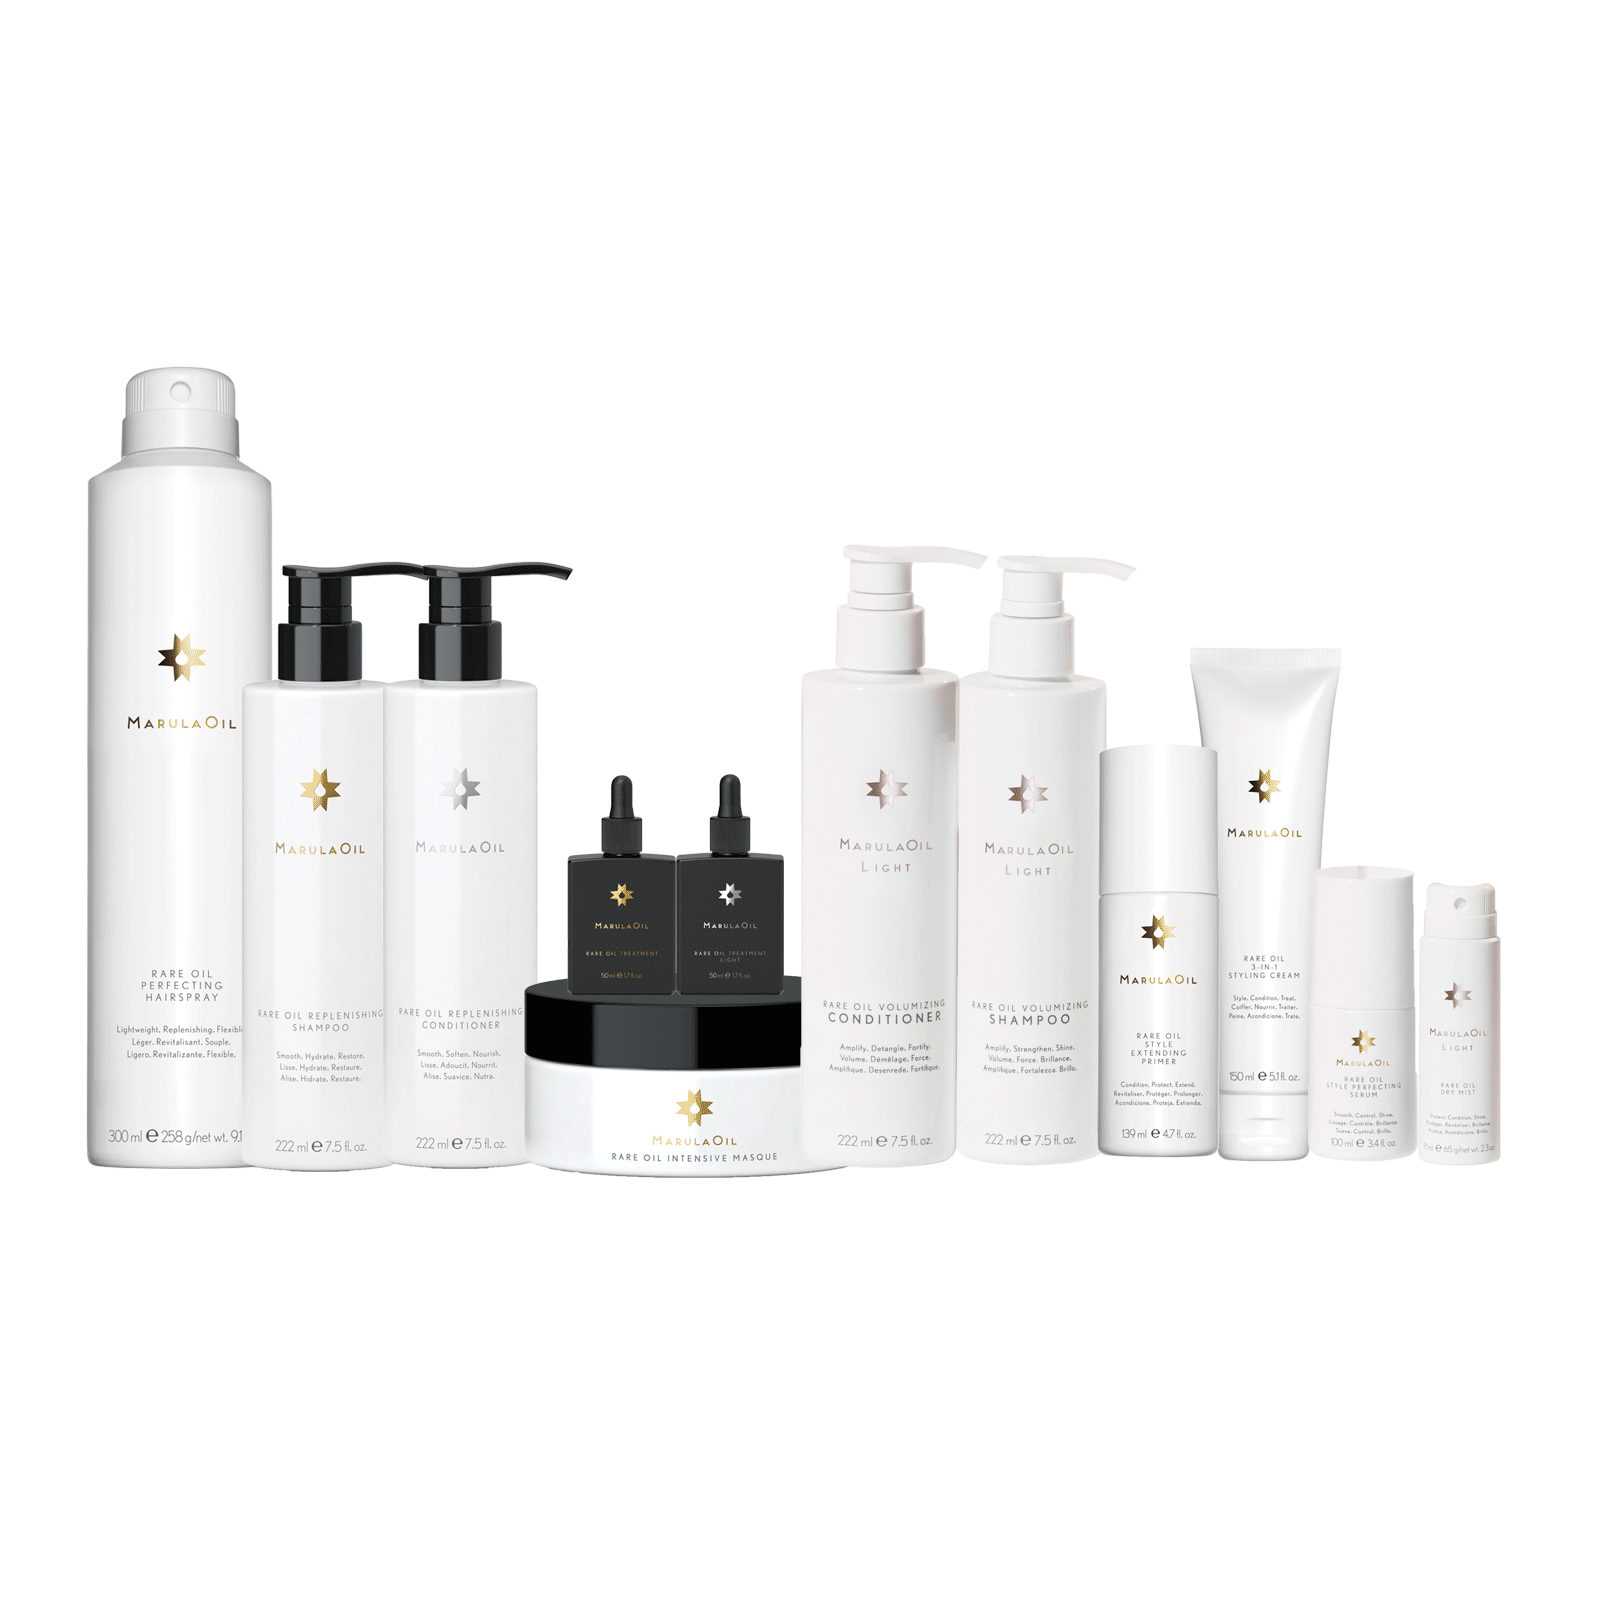 MarulaOil Stylist Intro - John Paul Mitchell Systems | CosmoProf